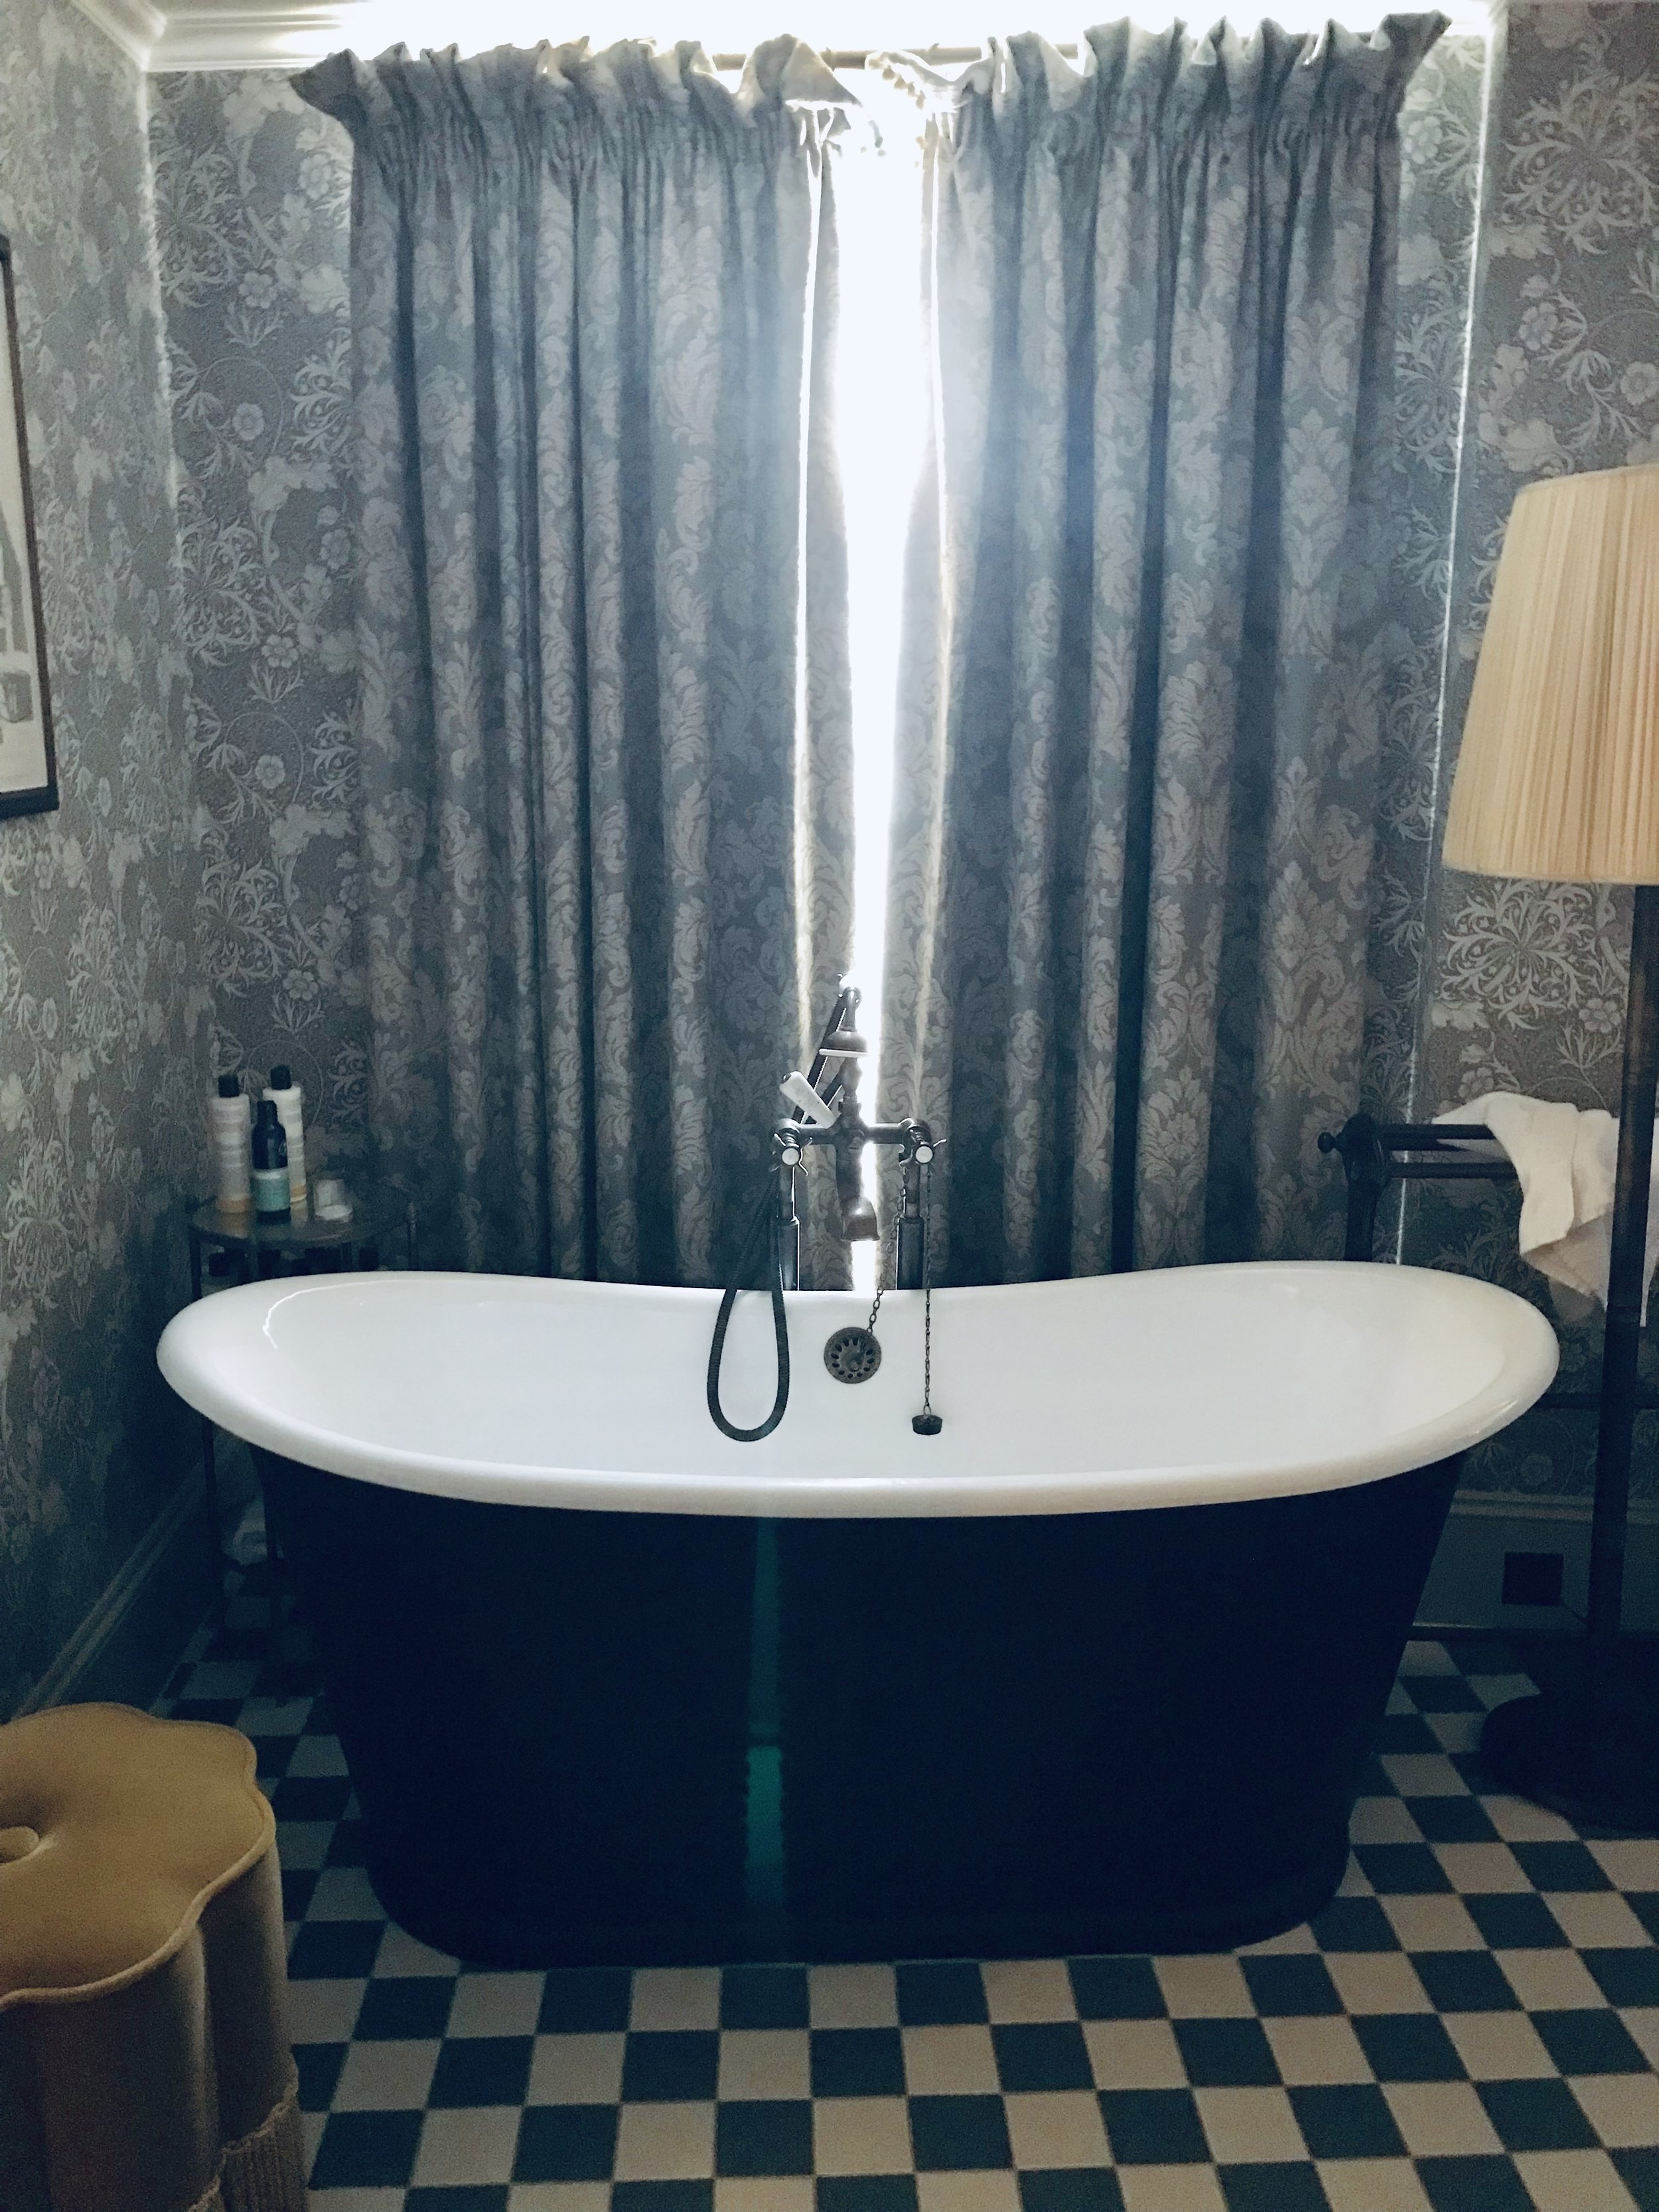 Love this bath in one of the bedrooms at Kettner's Soho House in London to launch Frances Prescott's fabulous new Tri-Spritz